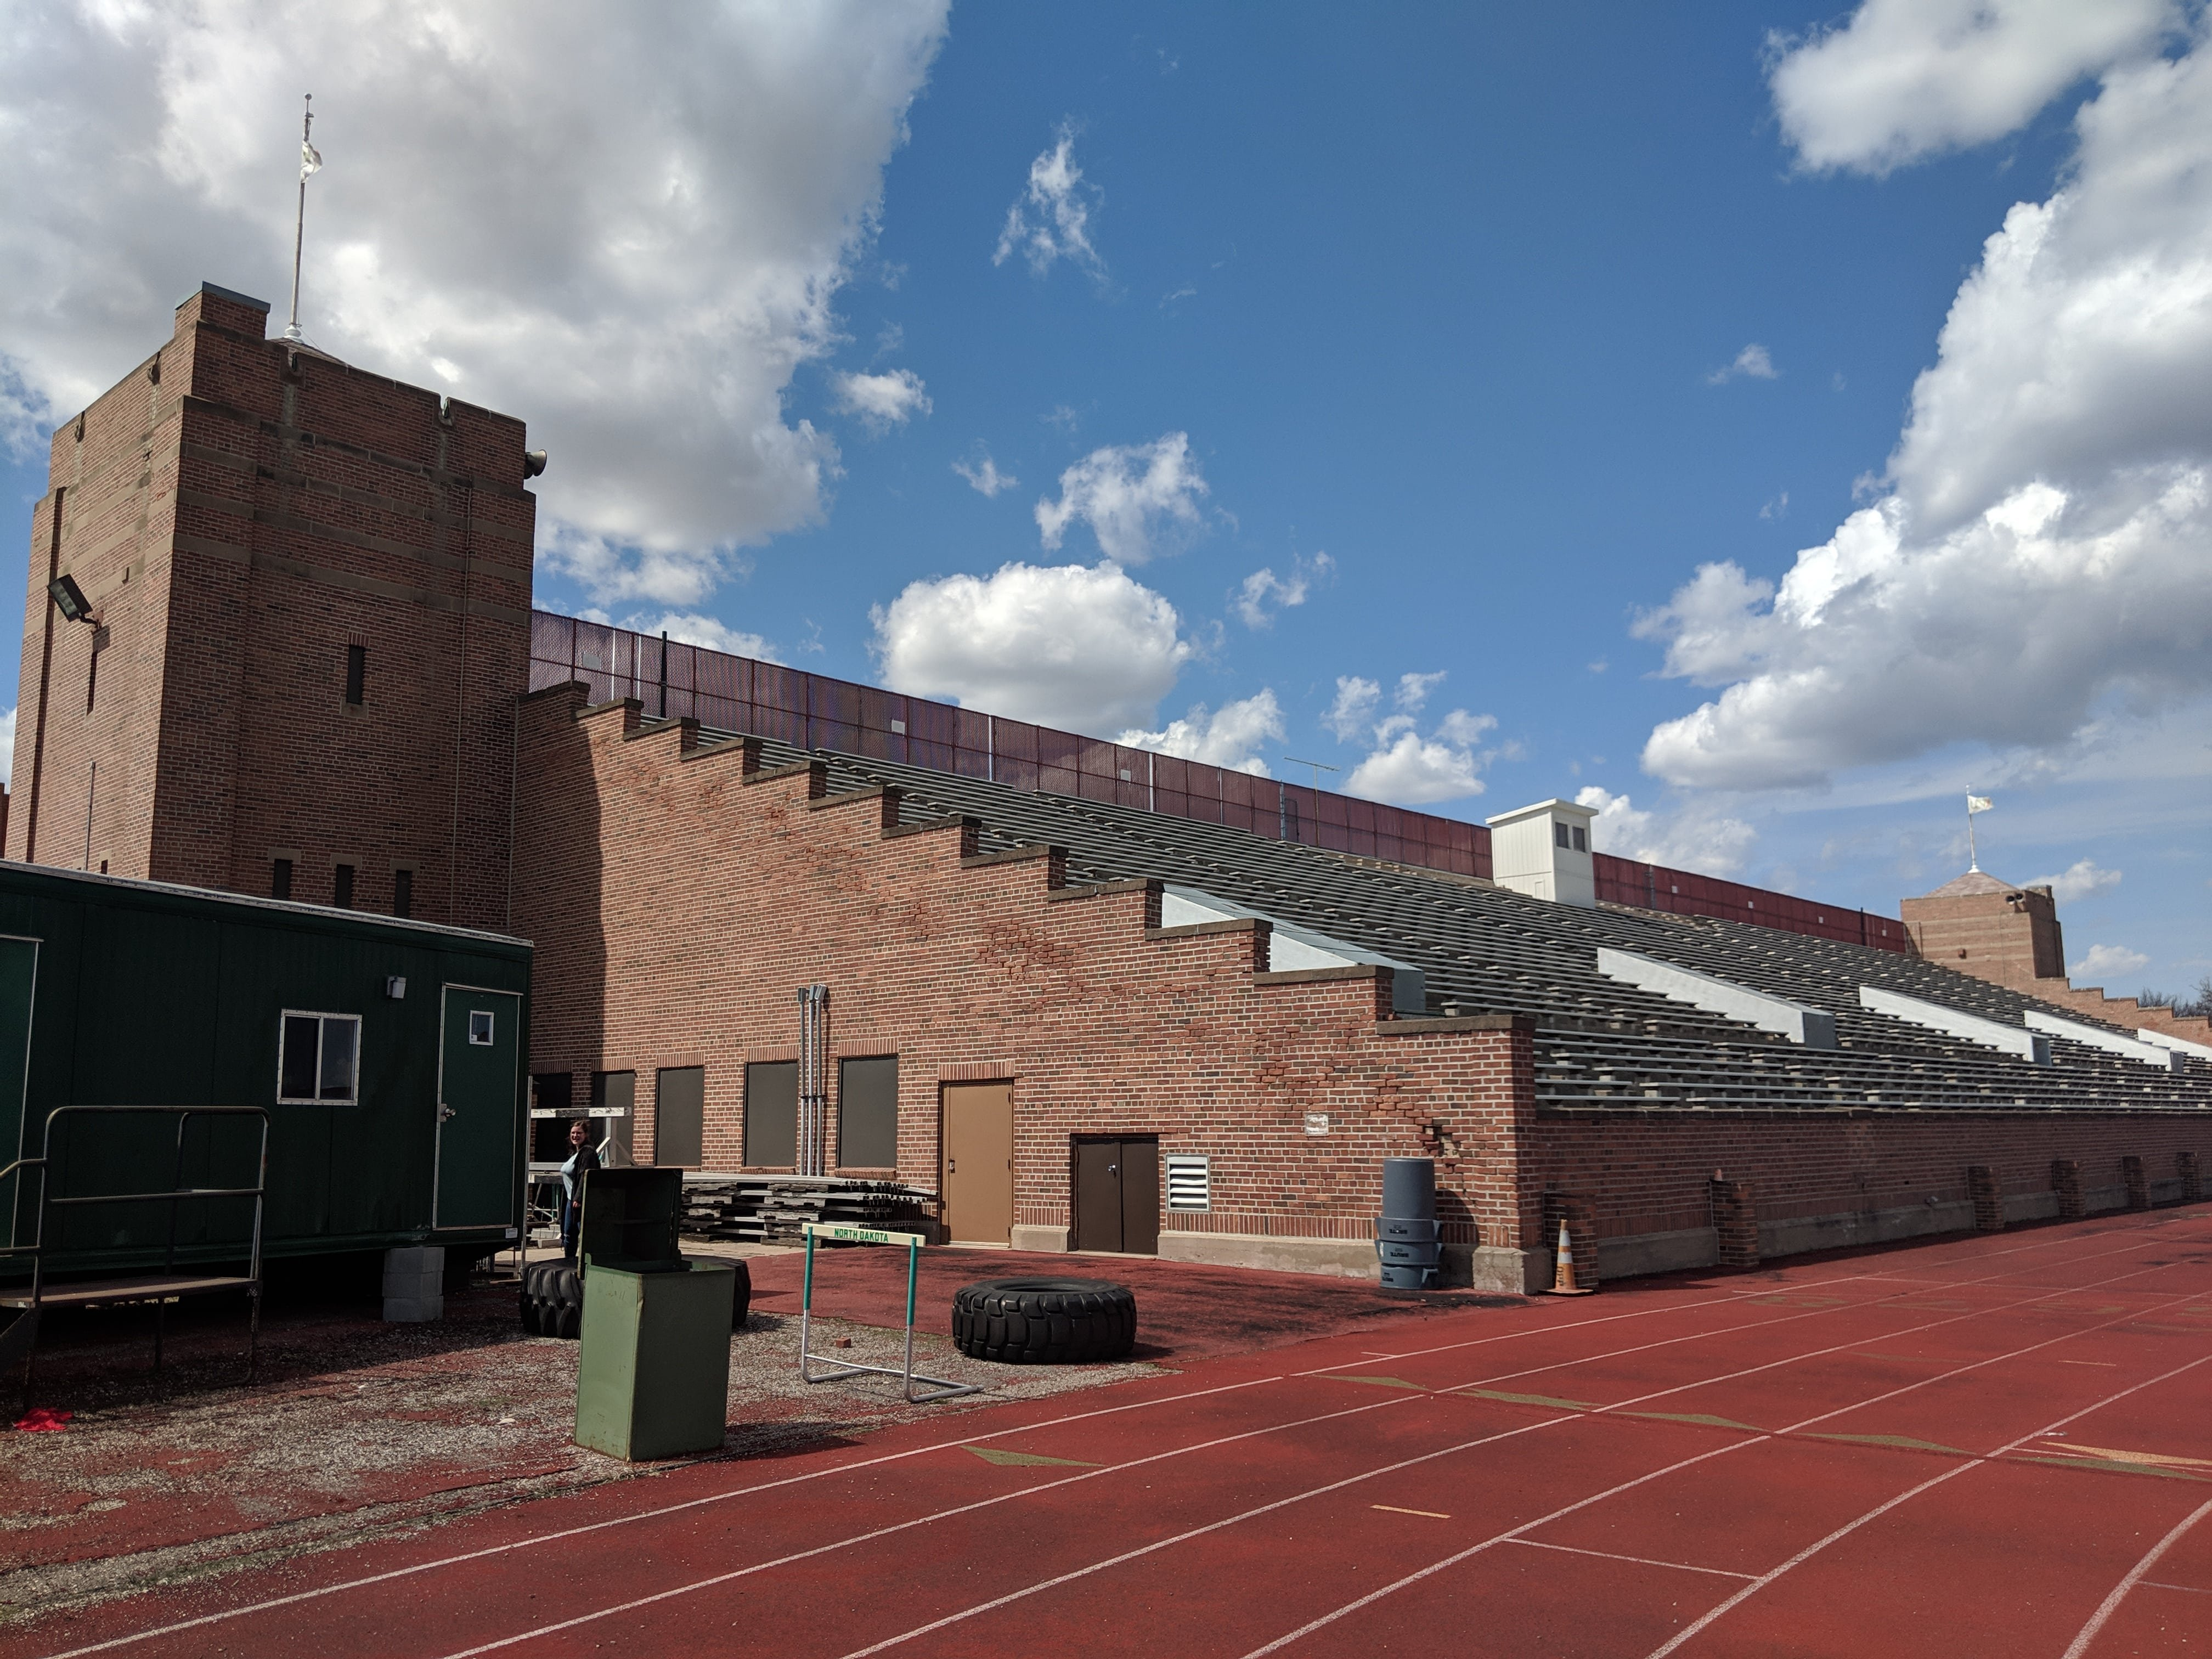 The grandstands of the Memorial Stadium taken from the south end of the field.